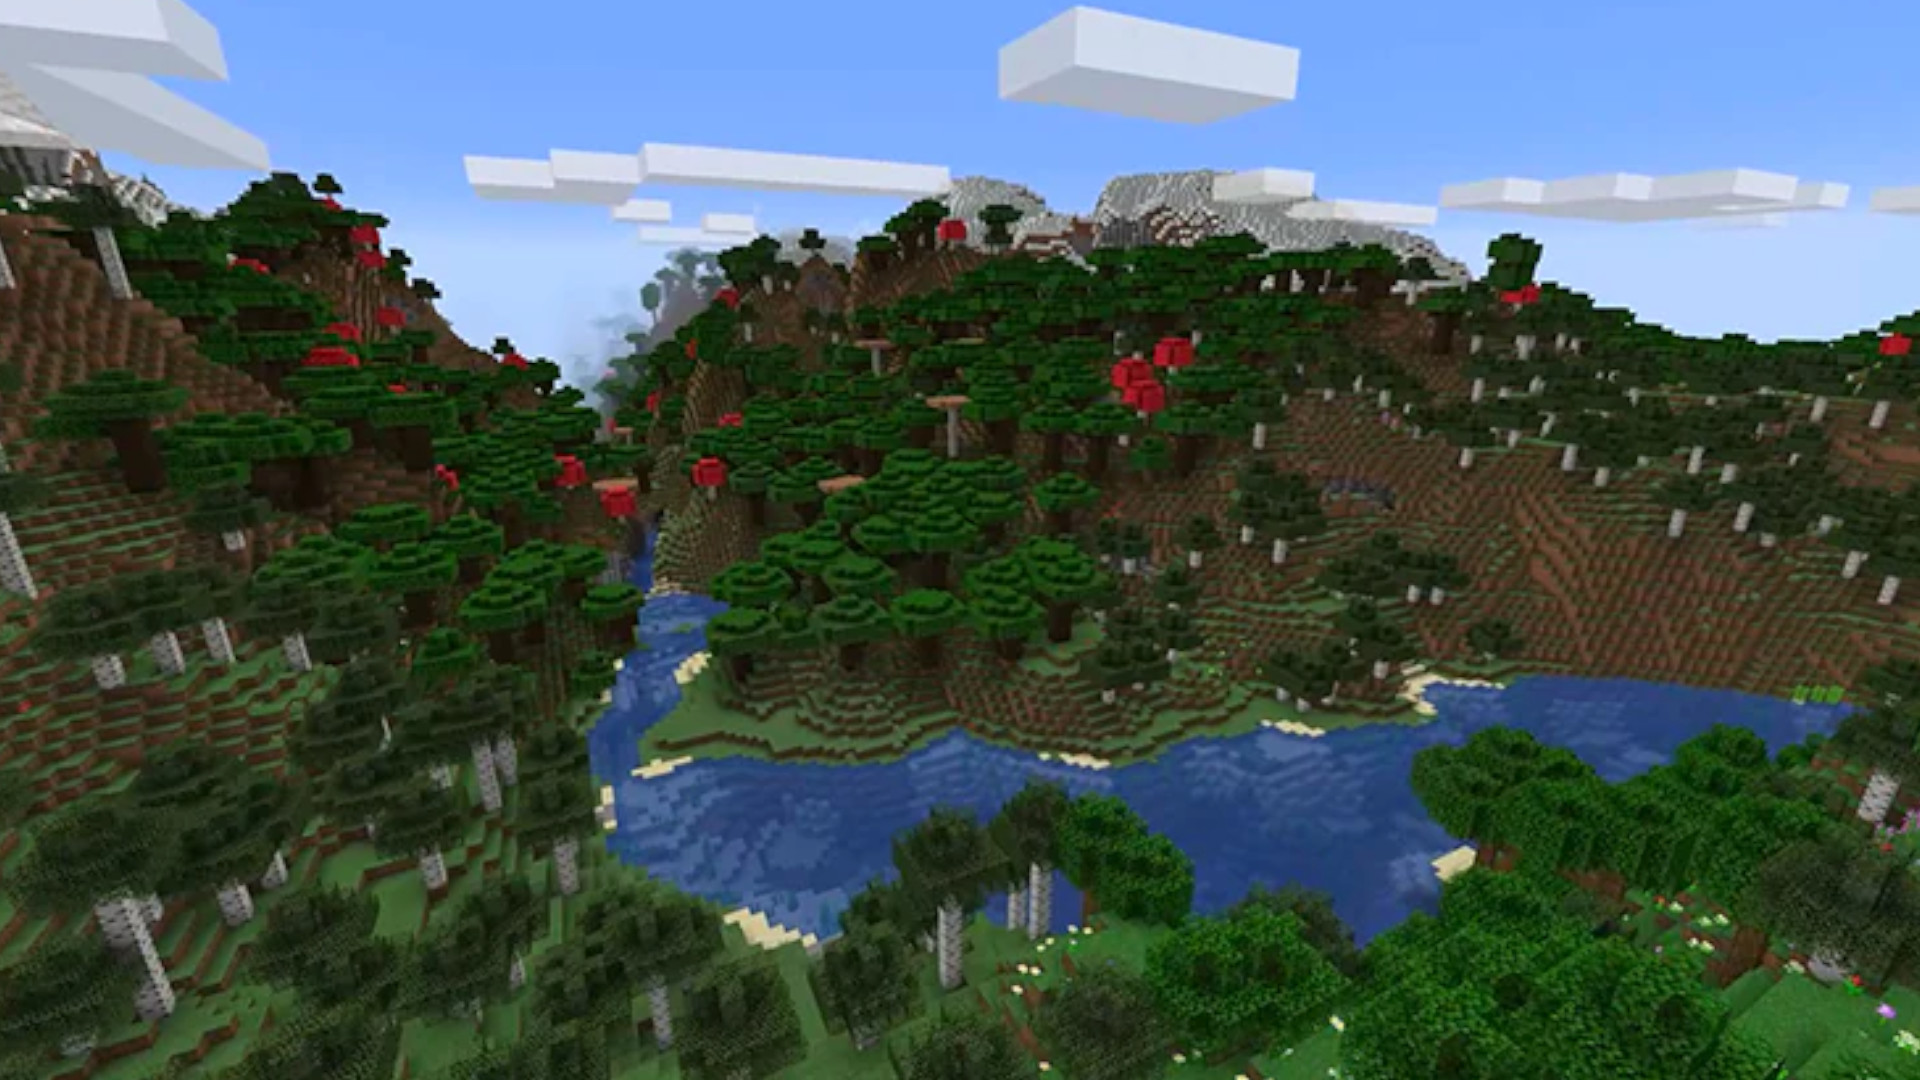 Minecraft's world generation and monster spawns are changing completely